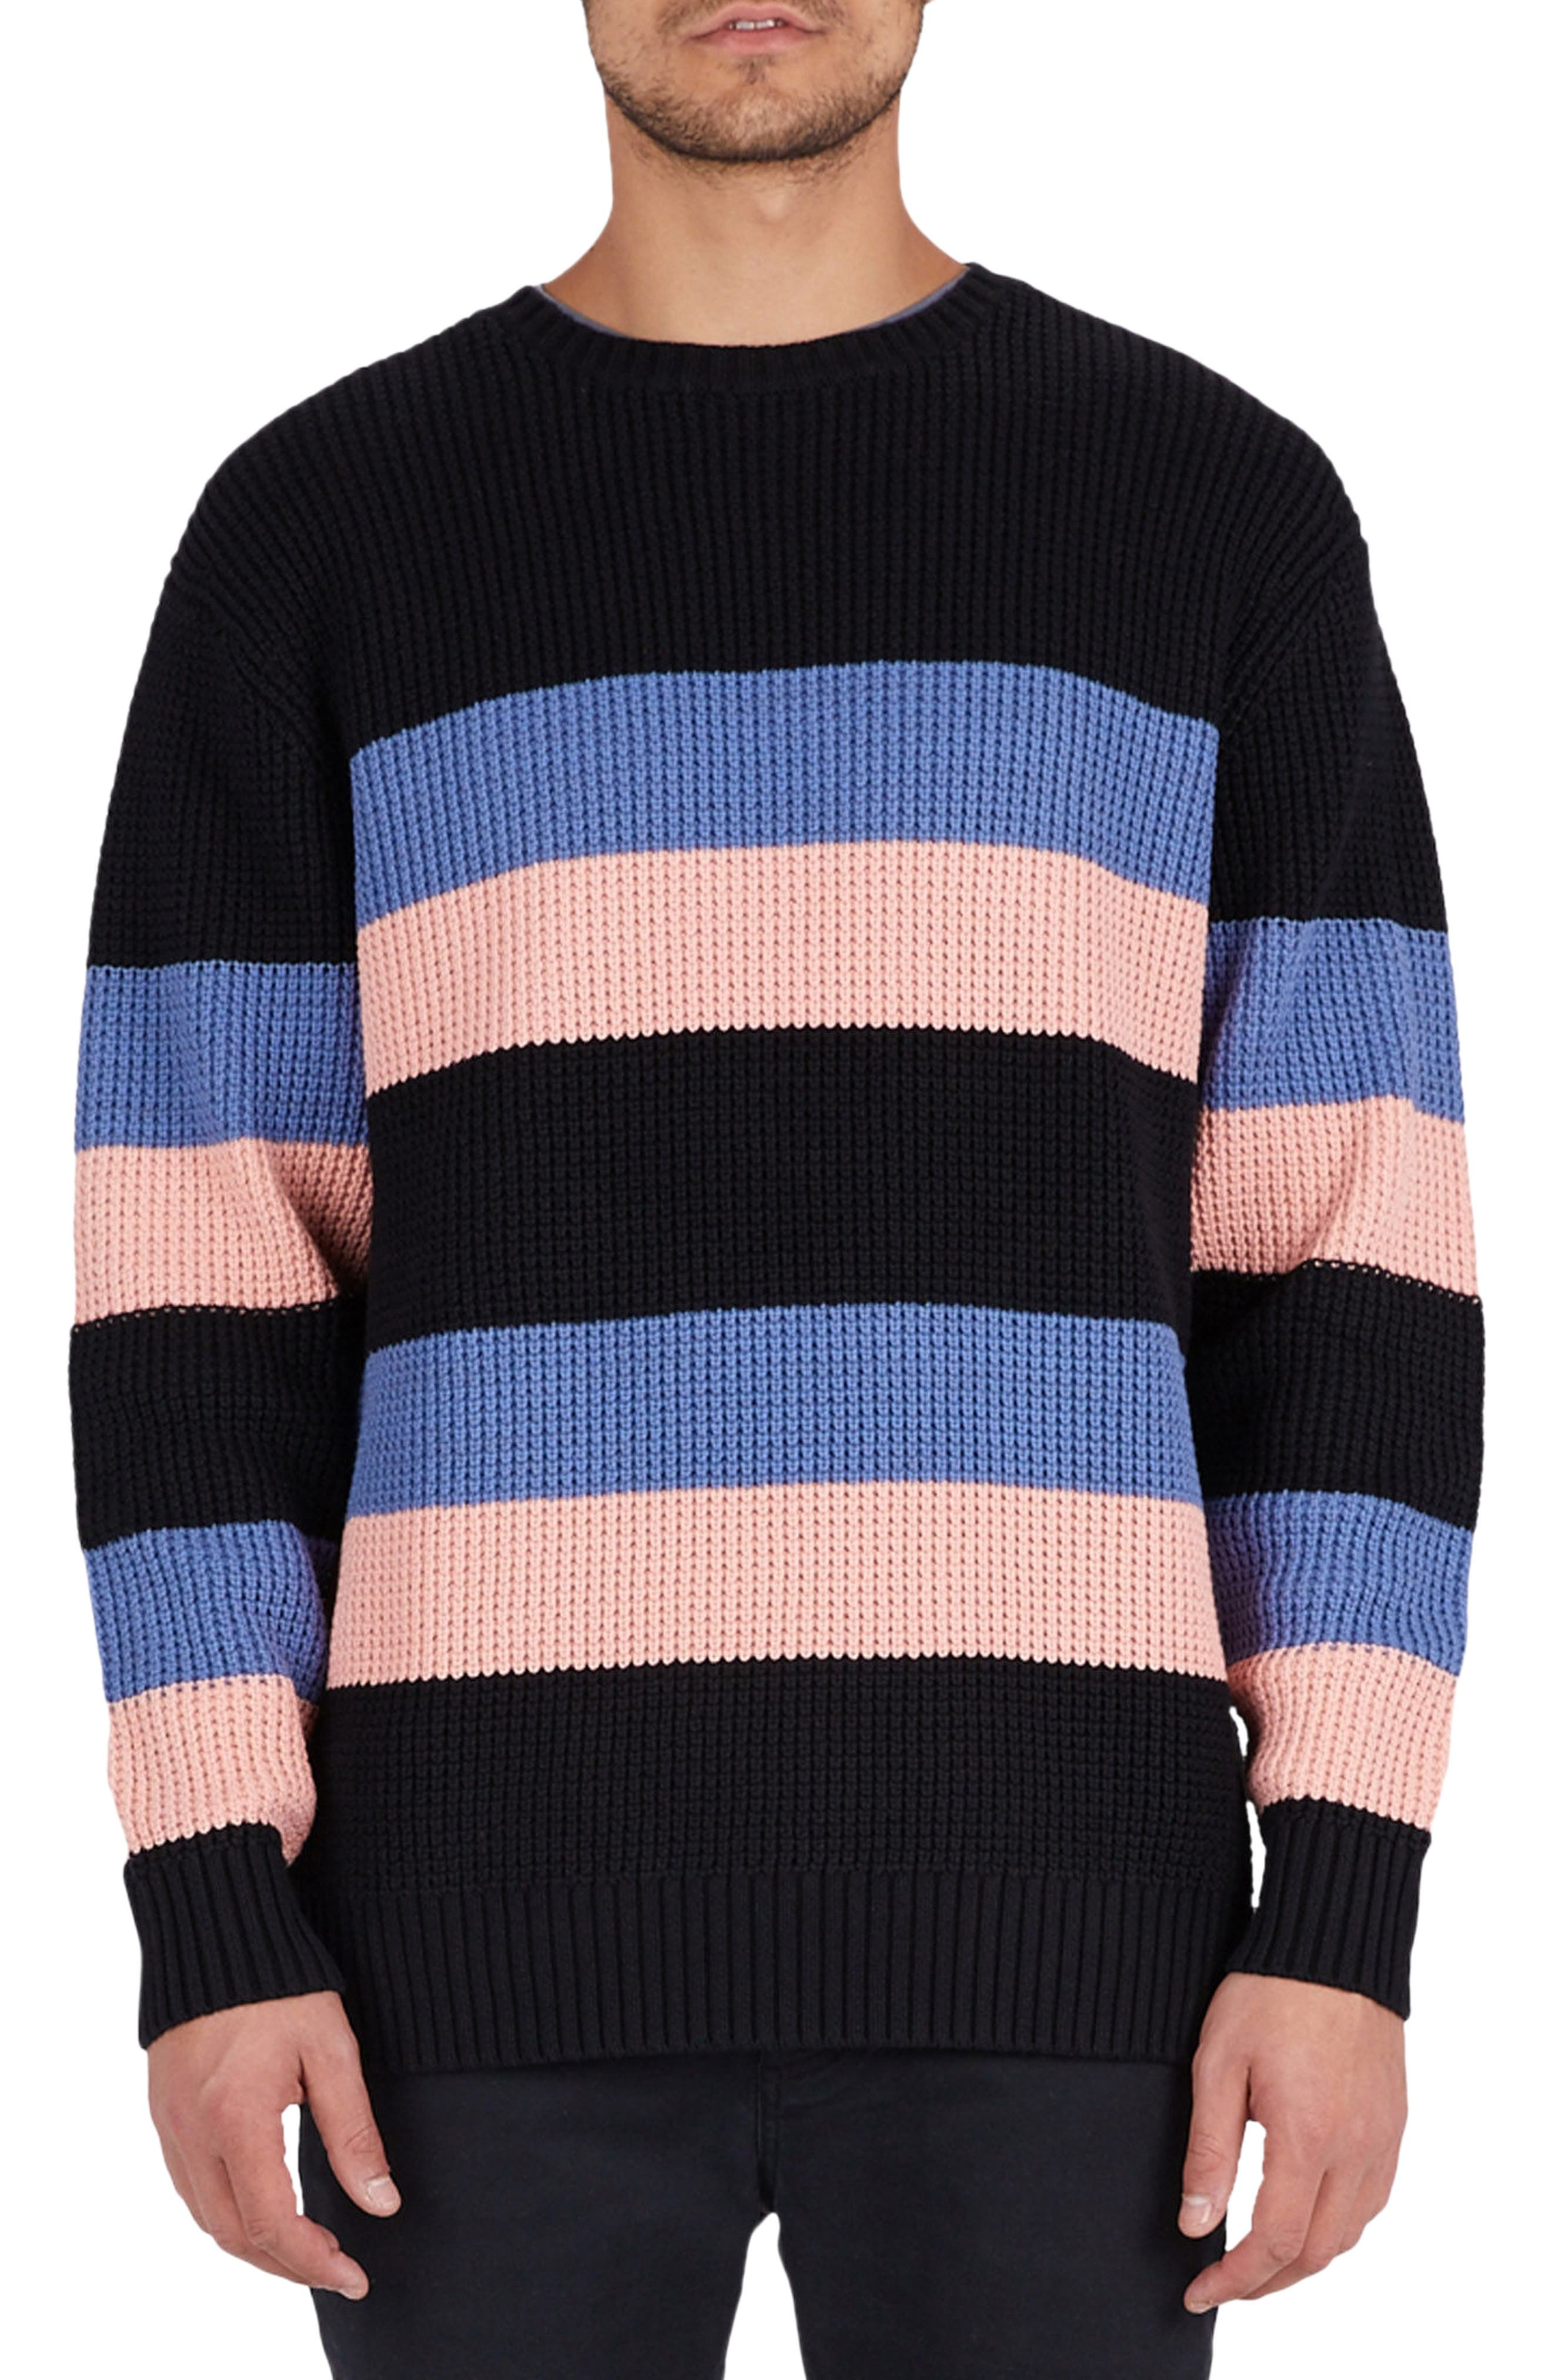 Rugby Stripe Sweater,                         Main,                         color, 001